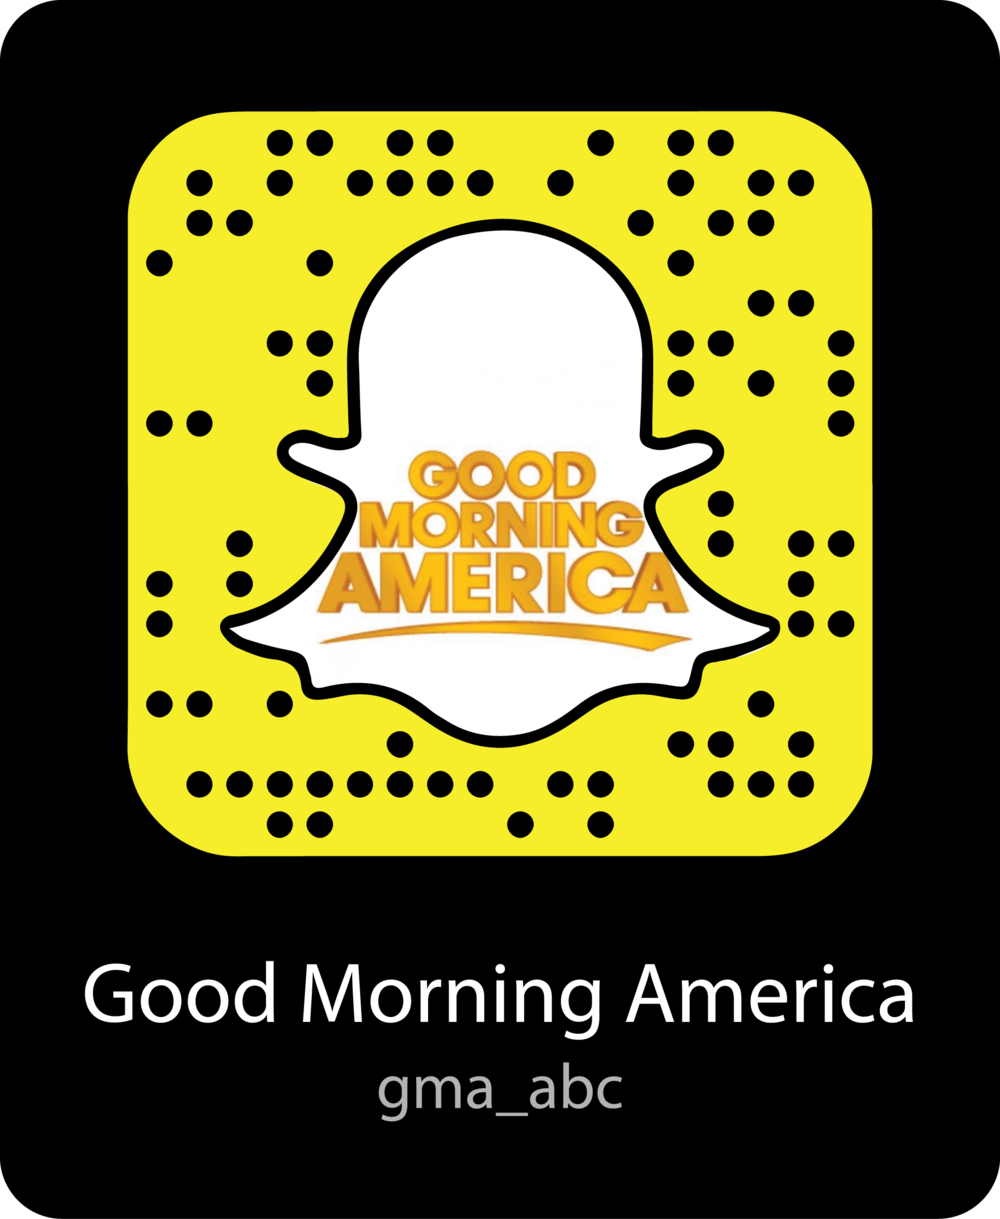 gma_abc-Brands-snapchat-snapcode.png